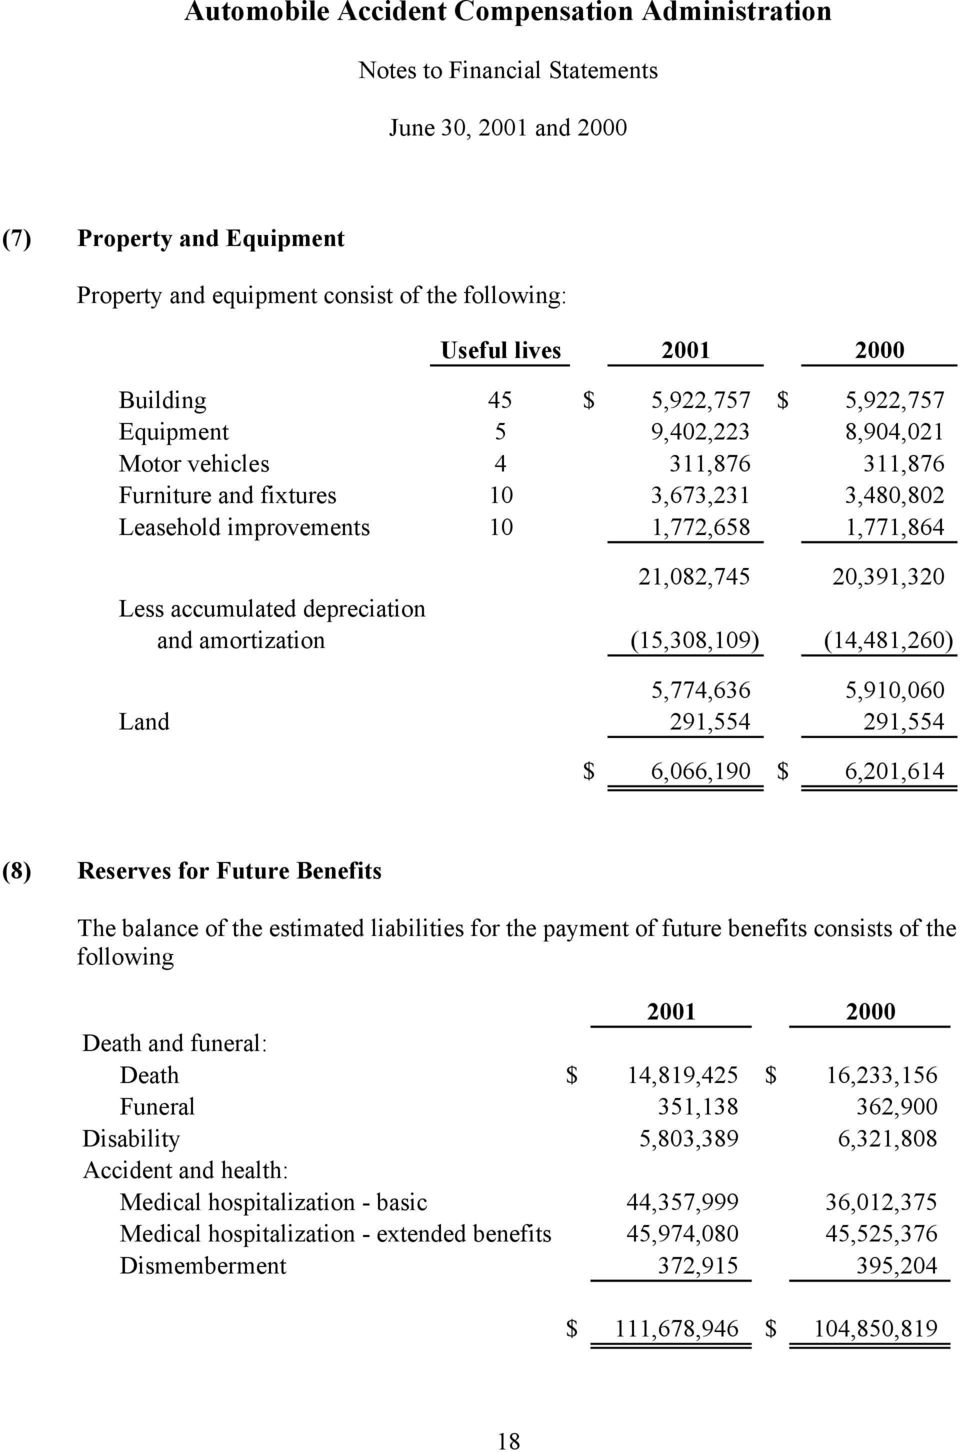 5,910,060 Land 291,554 291,554 $ 6,066,190 $ 6,201,614 (8) Reserves for Future Benefits The balance of the estimated liabilities for the payment of future benefits consists of the following 2001 2000